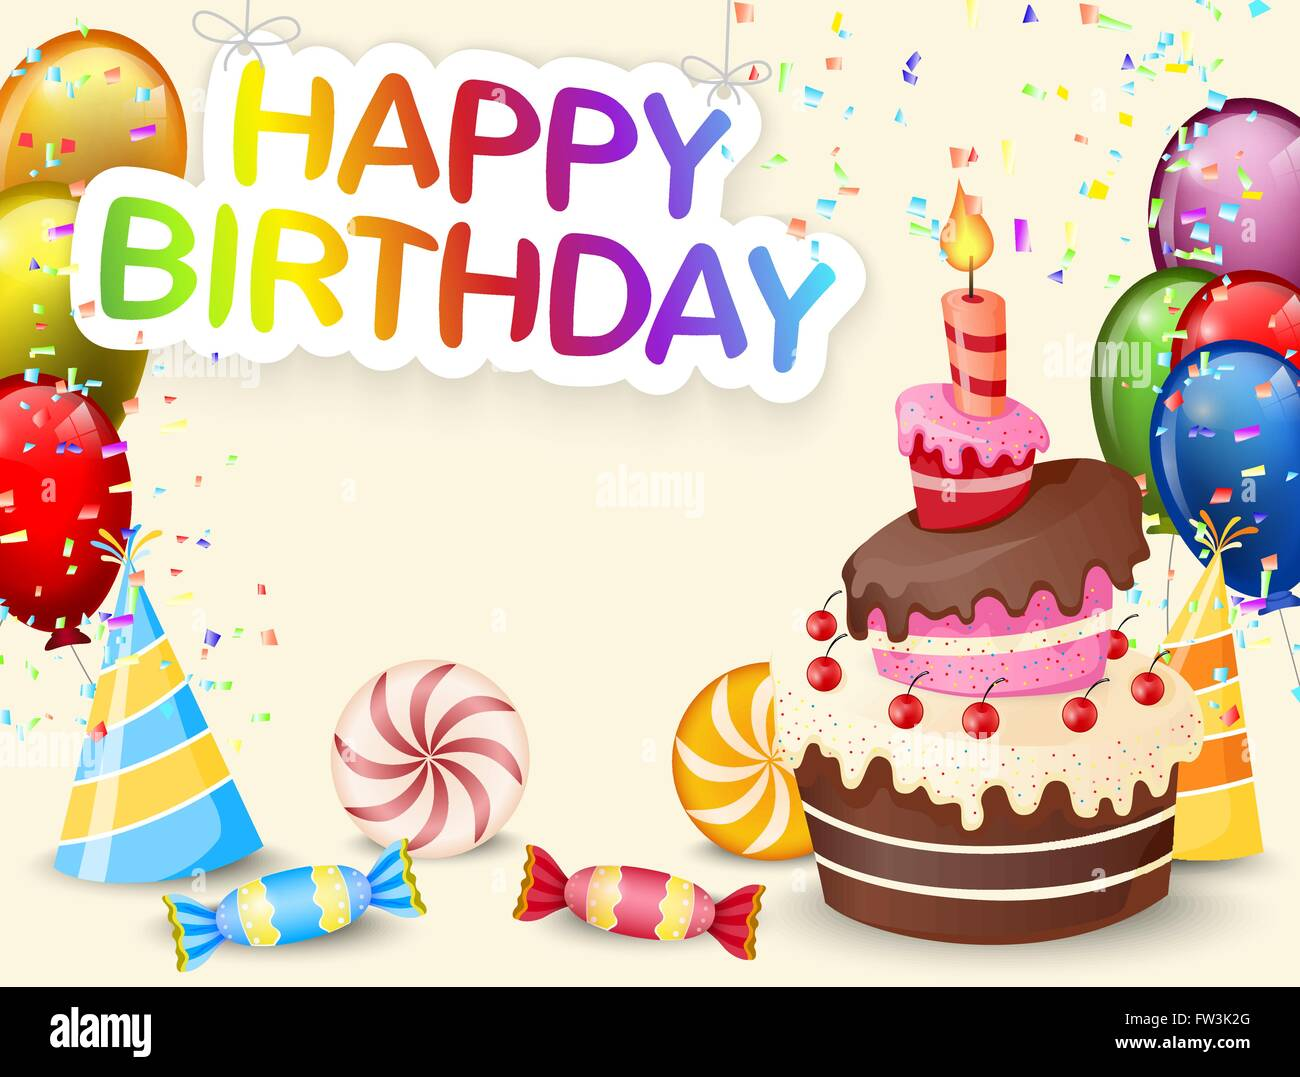 Birthday Background With Birthday Cake And Colorful Balloon Stock Vector Image Art Alamy